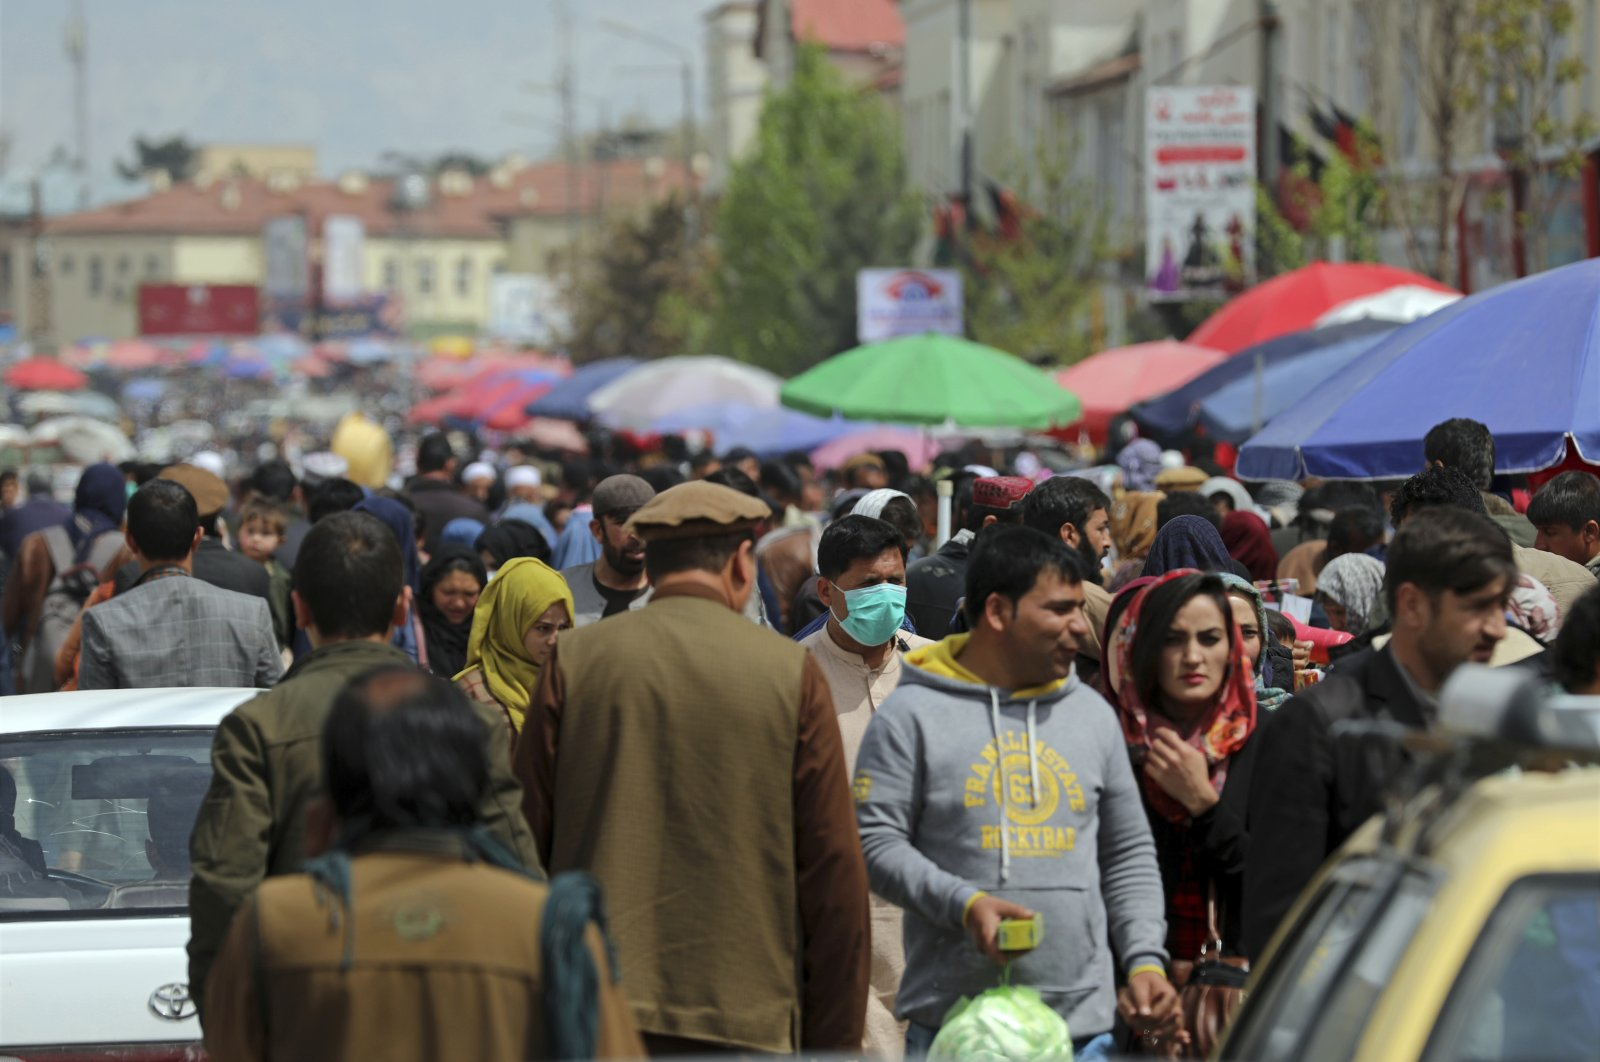 A man wearing a protective face mask to help curb the spread of the coronavirus walks among crowds in a street market in Kabul, Afghanistan, April 7, 2021. (AP Photo)